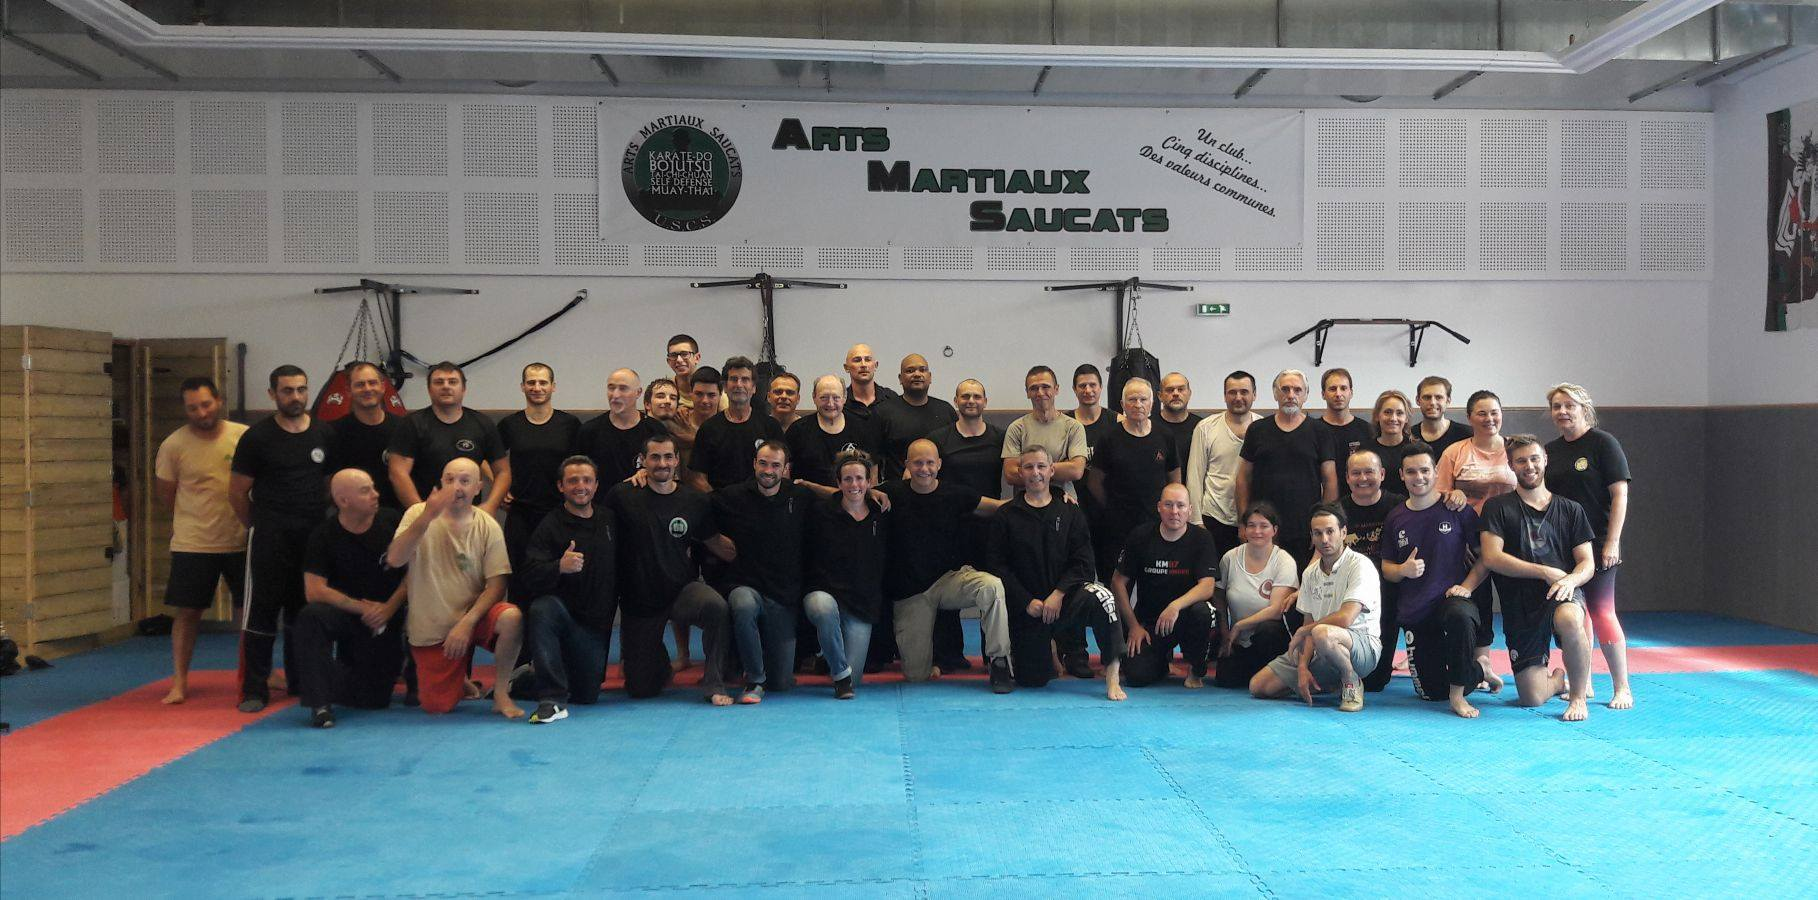 Groupe de self defense